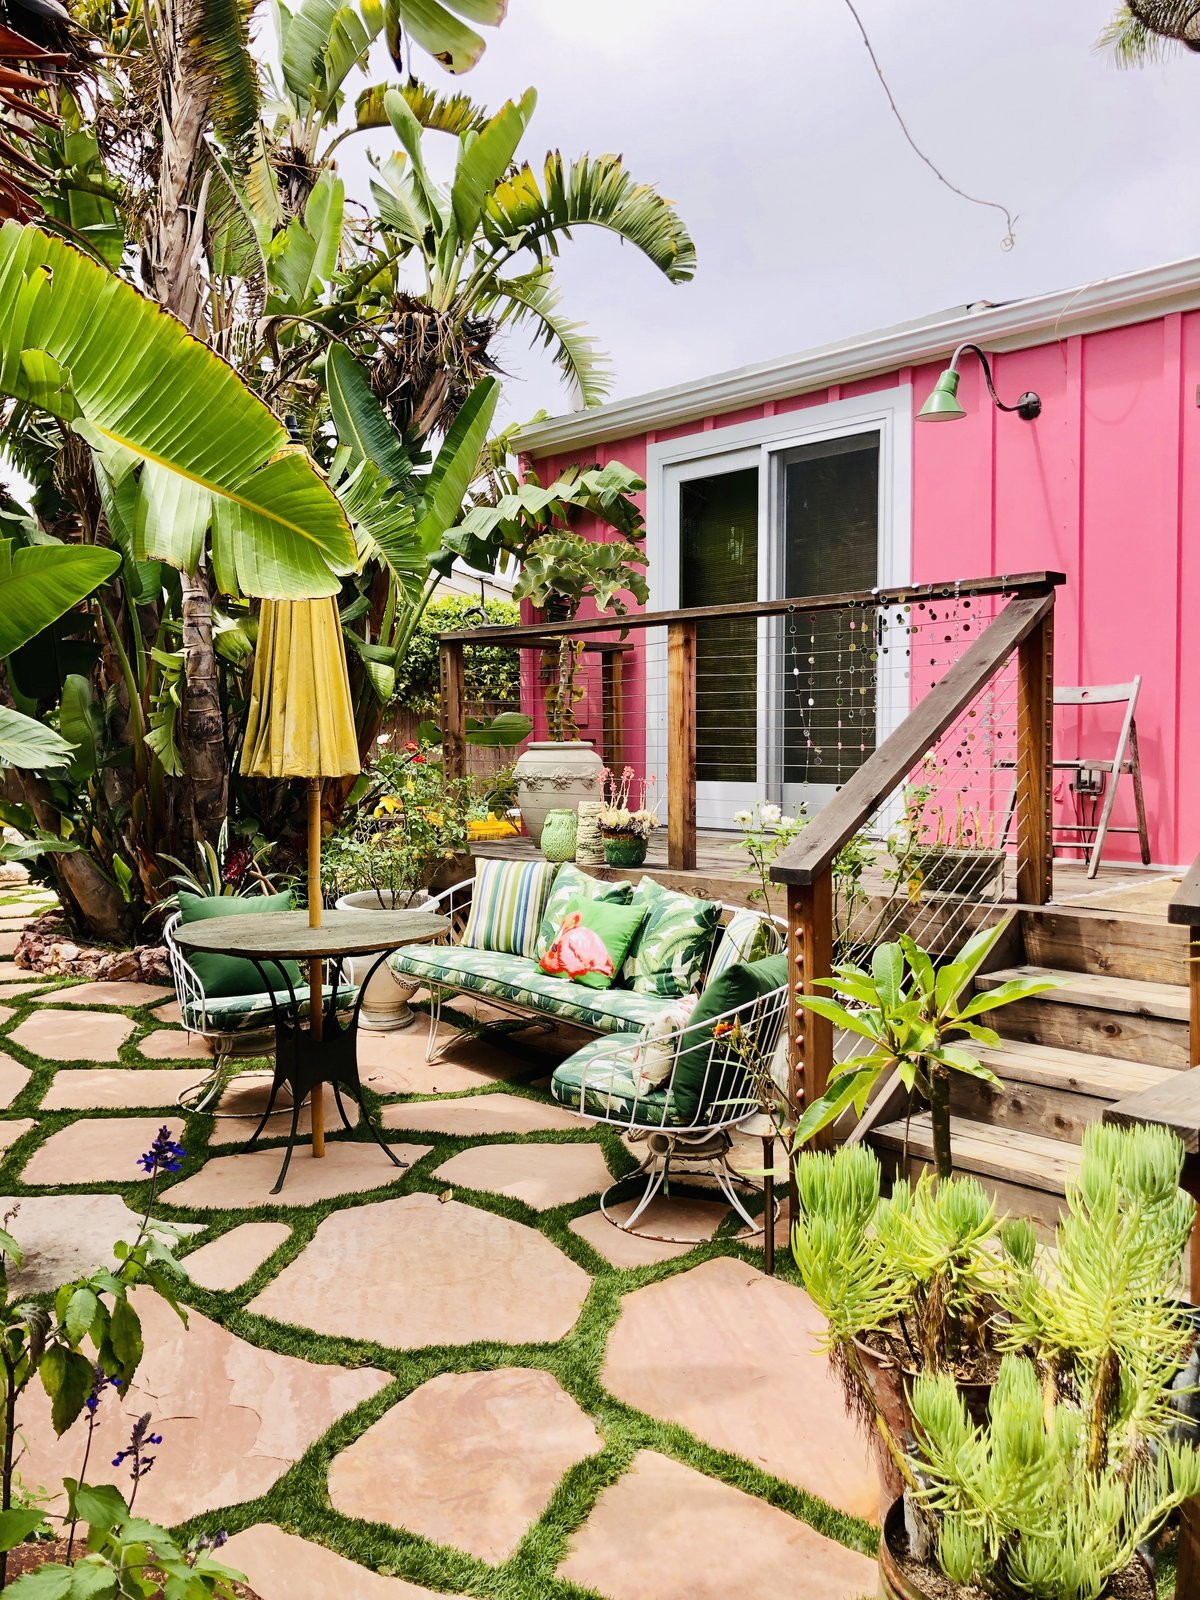 Fashion Icon Betsey Johnson Lists Her Hot Pink Mobile Home in Malibu for $1.9M